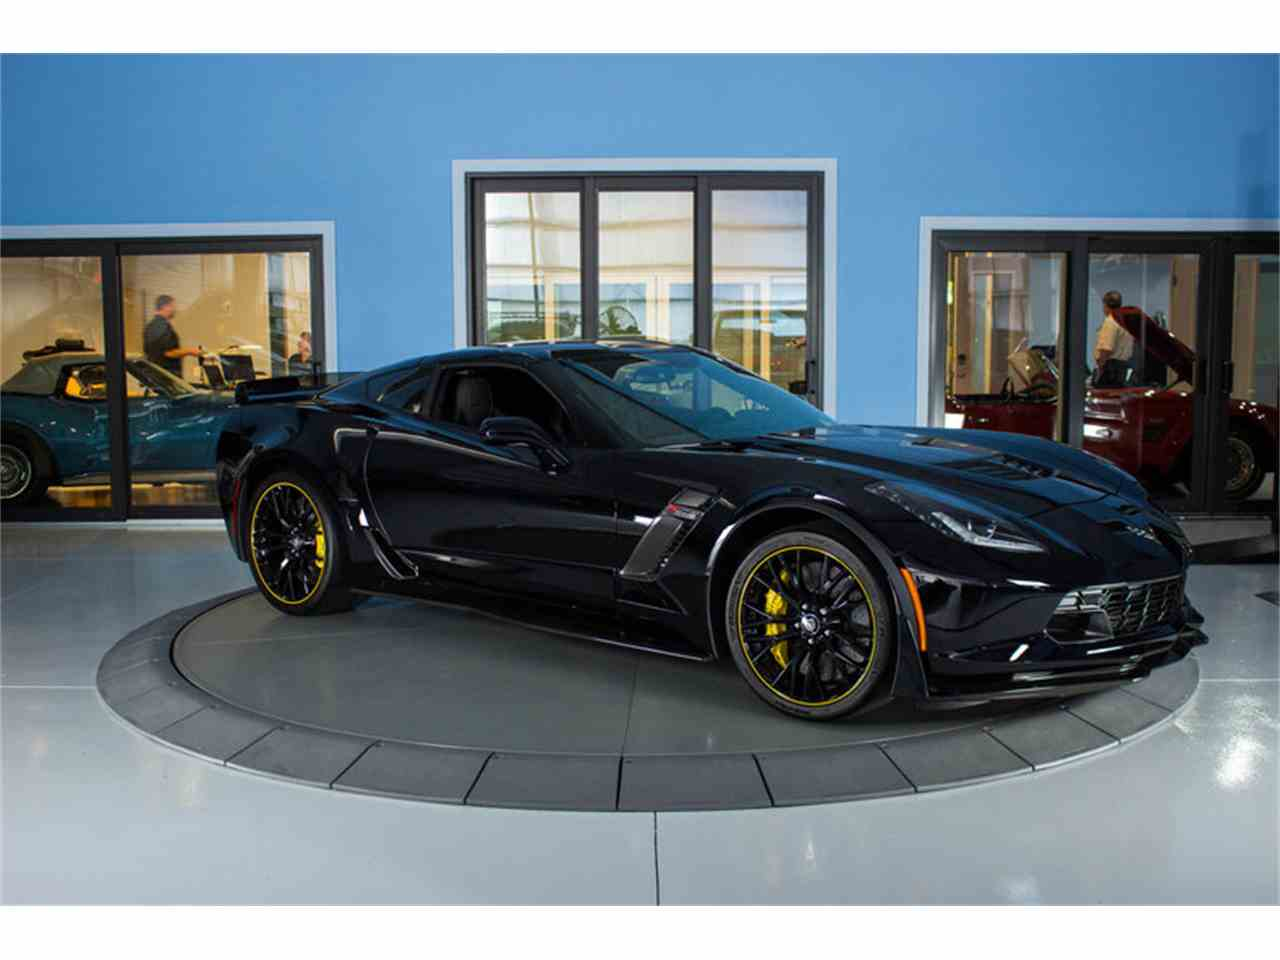 Large Picture of 2016 Chevrolet Corvette Z06 located in Florida - $99,997.00 Offered by Skyway Classics - M7FW